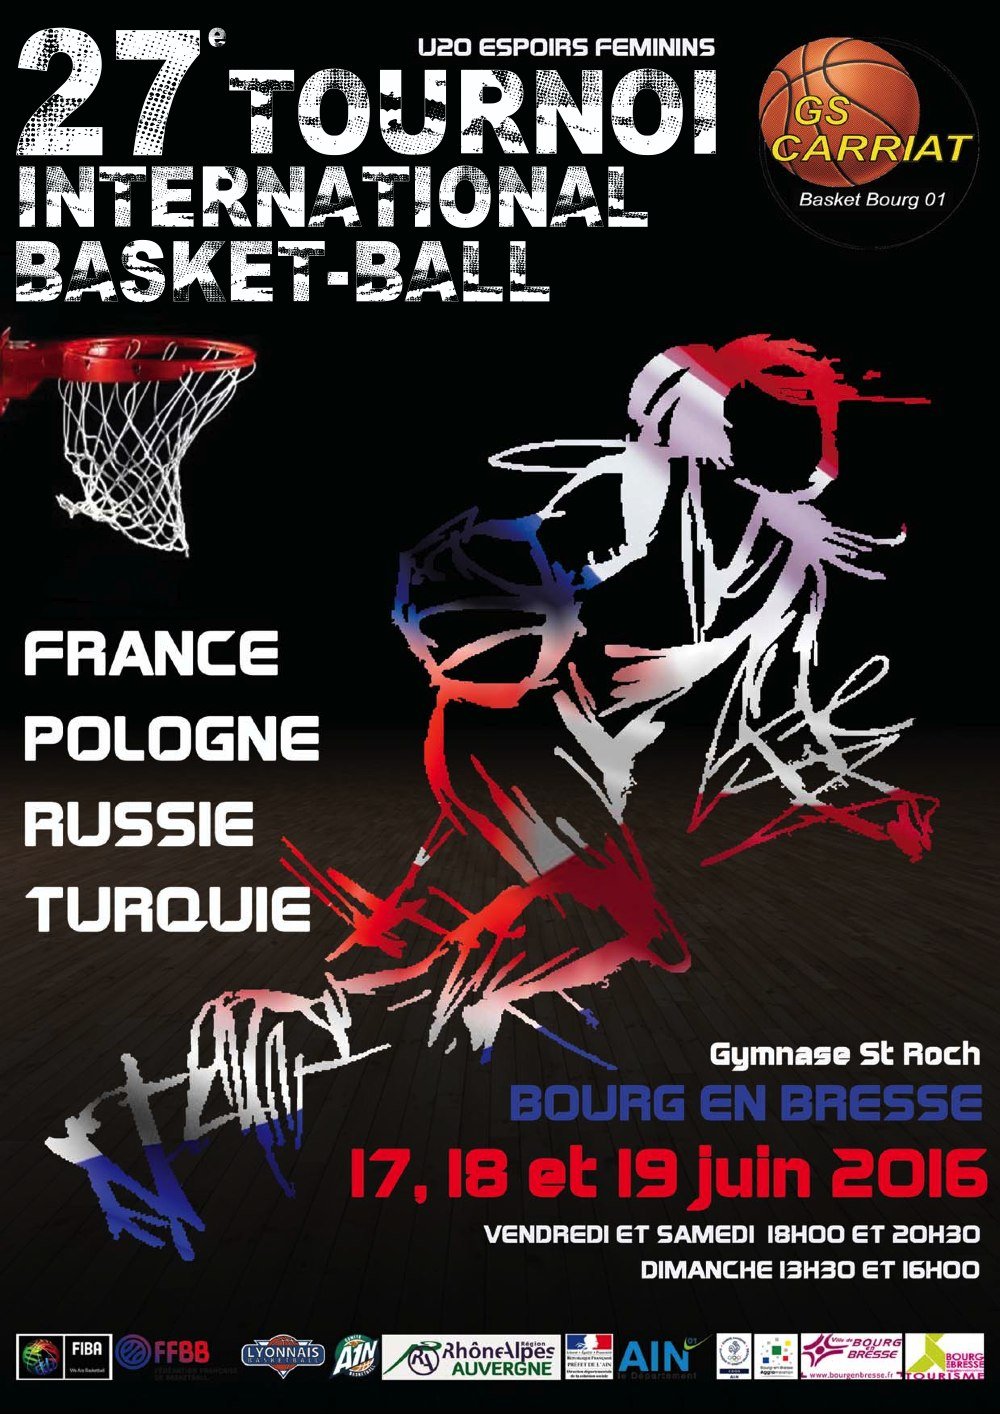 Tournoi International du GS Carriat